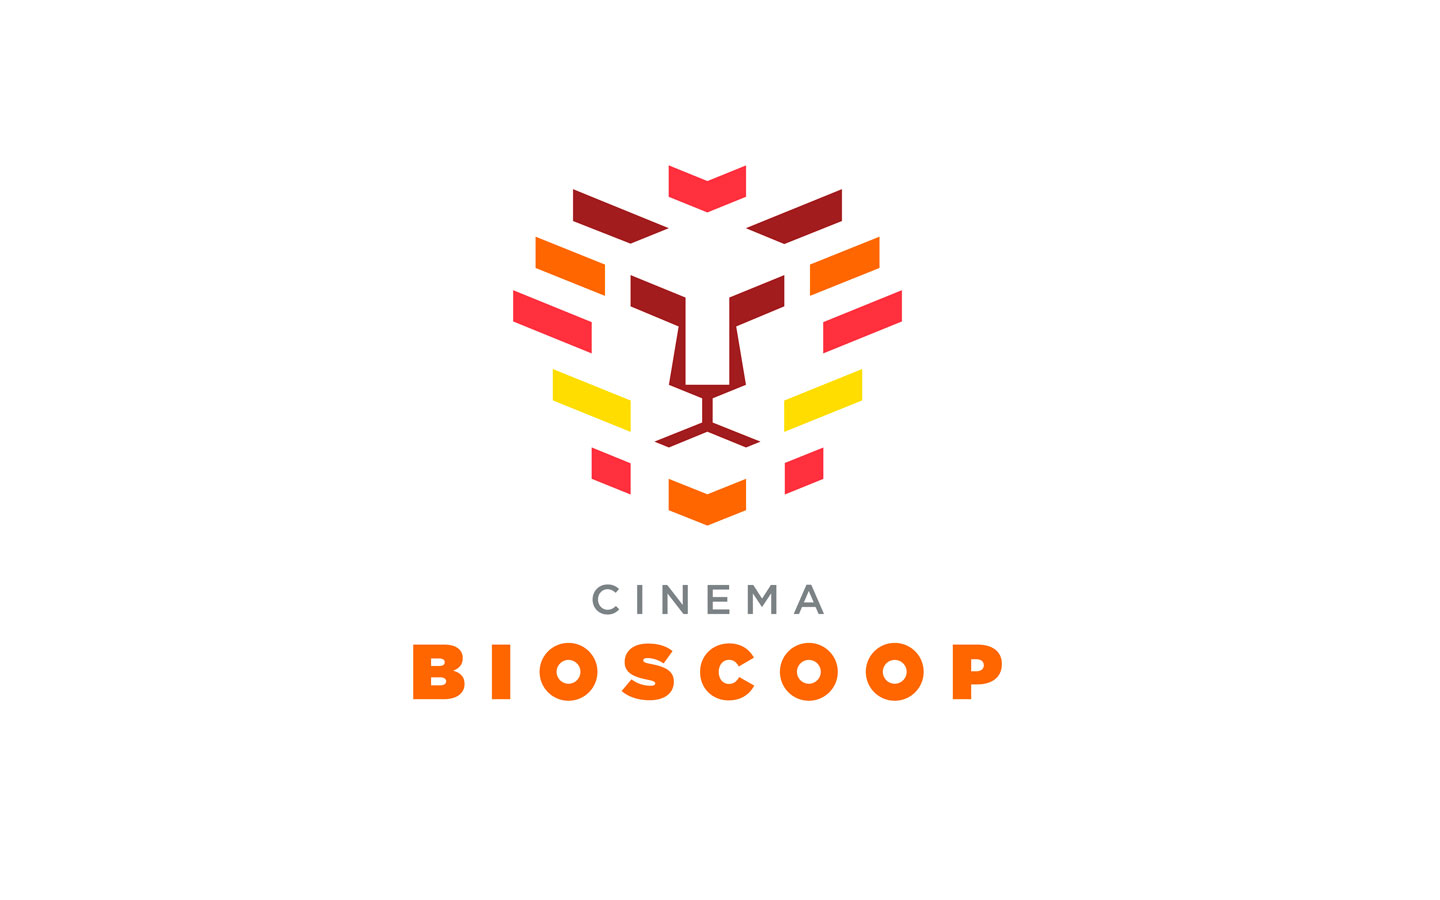 Cinema Bioscoop